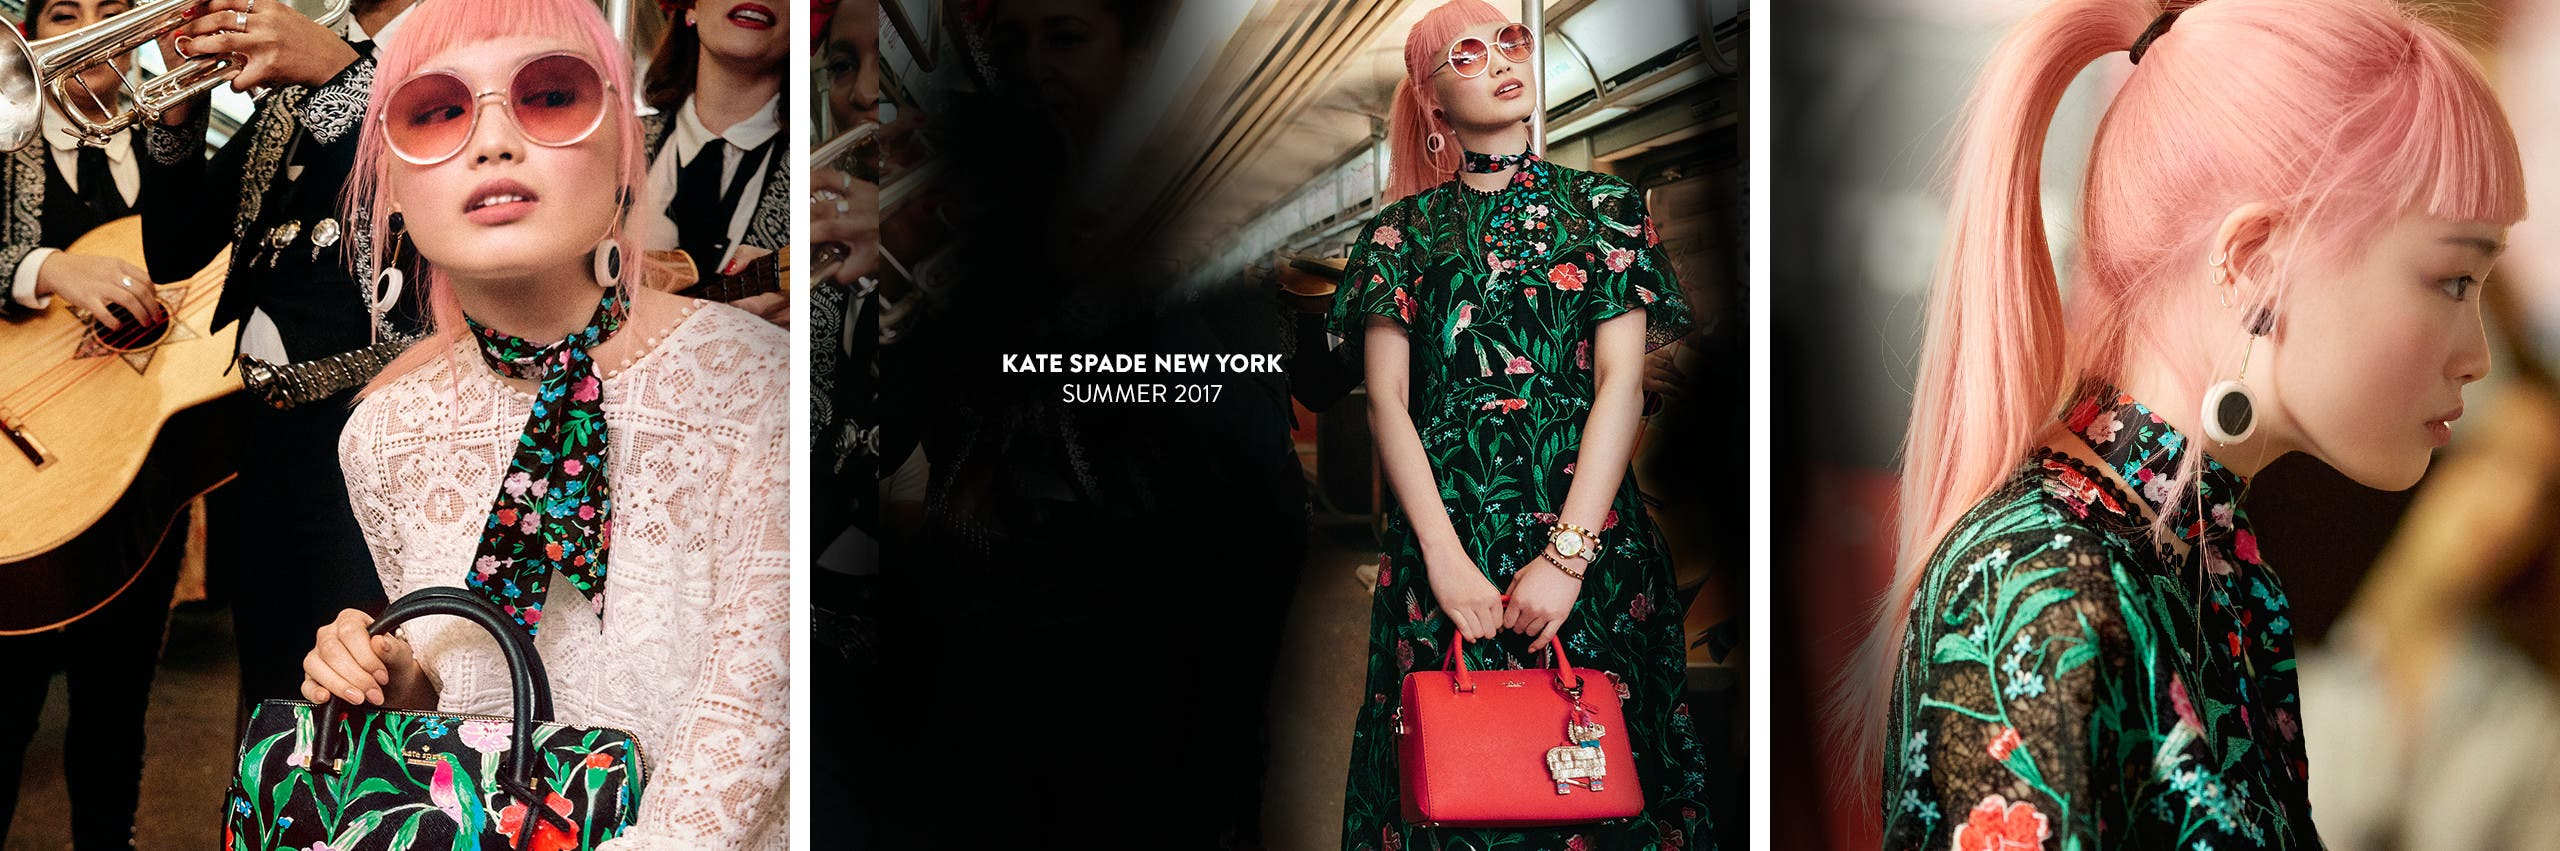 kate spade new york: the summer 2017 collection.